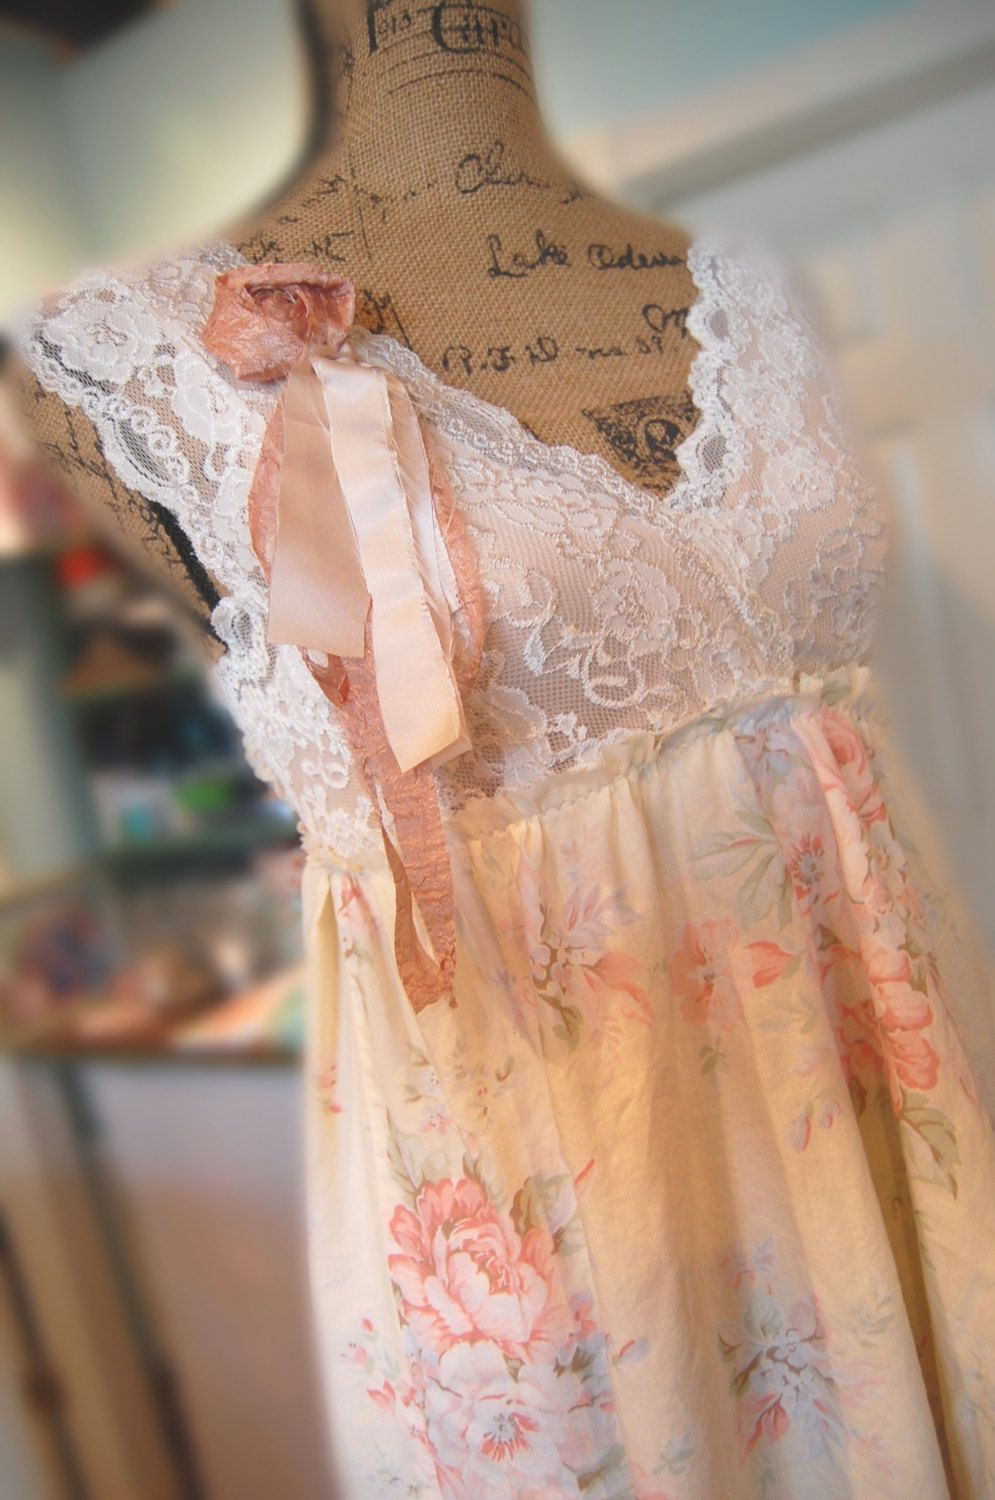 Camisole Dress Womens Clothing Shabby Chic by